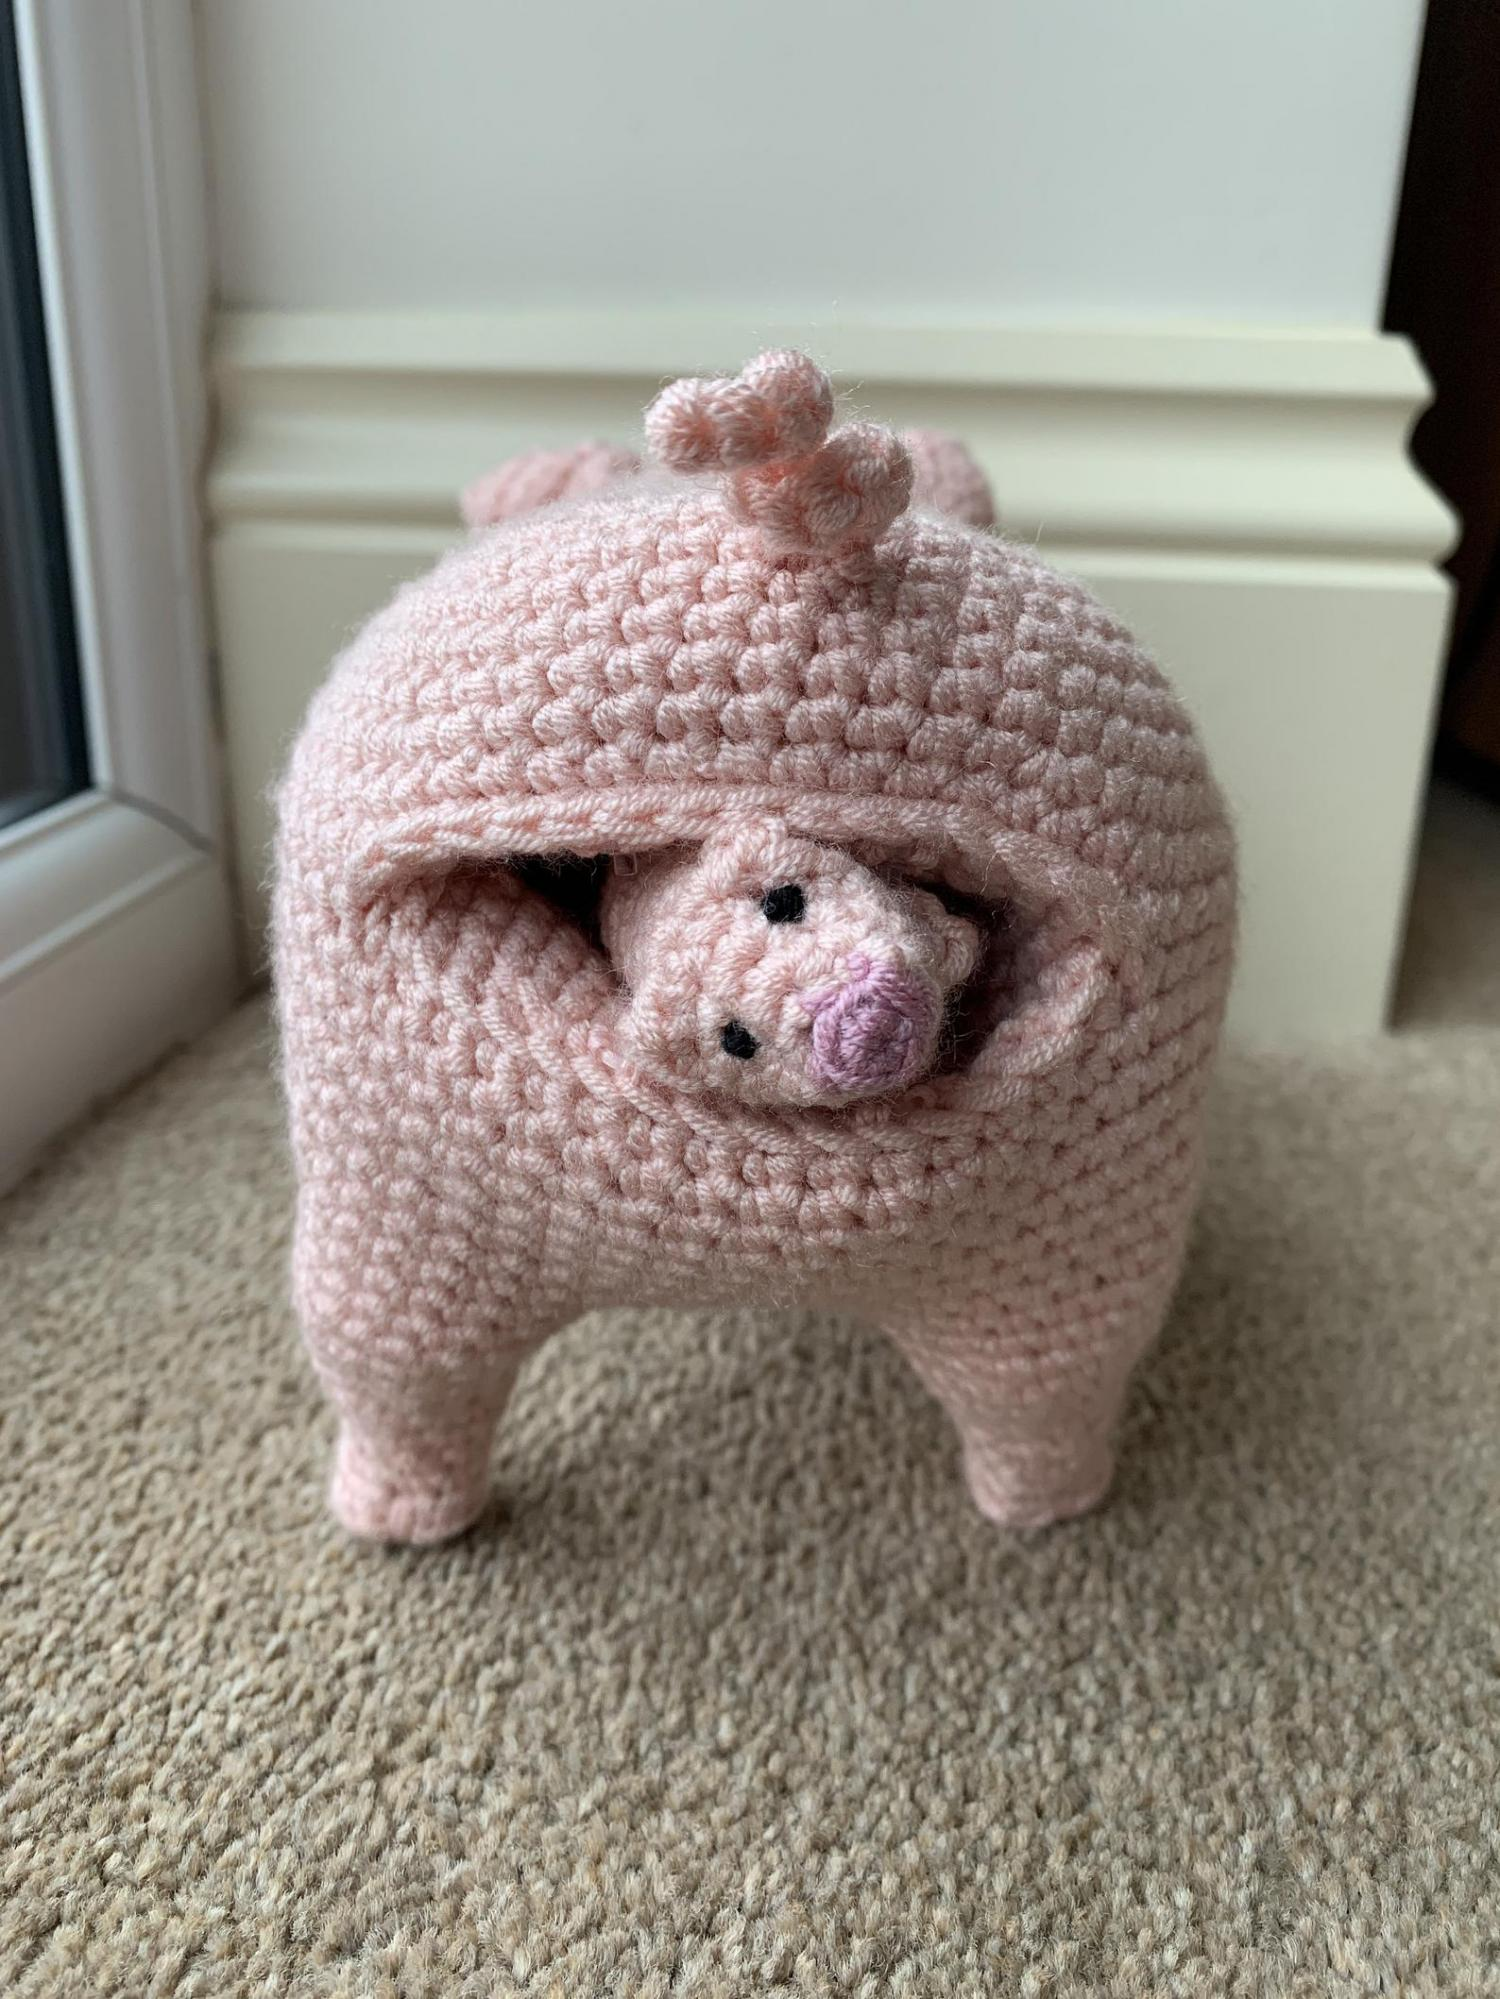 Birthing Pig That Feeds Its Piglets - Pig with Piglets Crochet Pattern